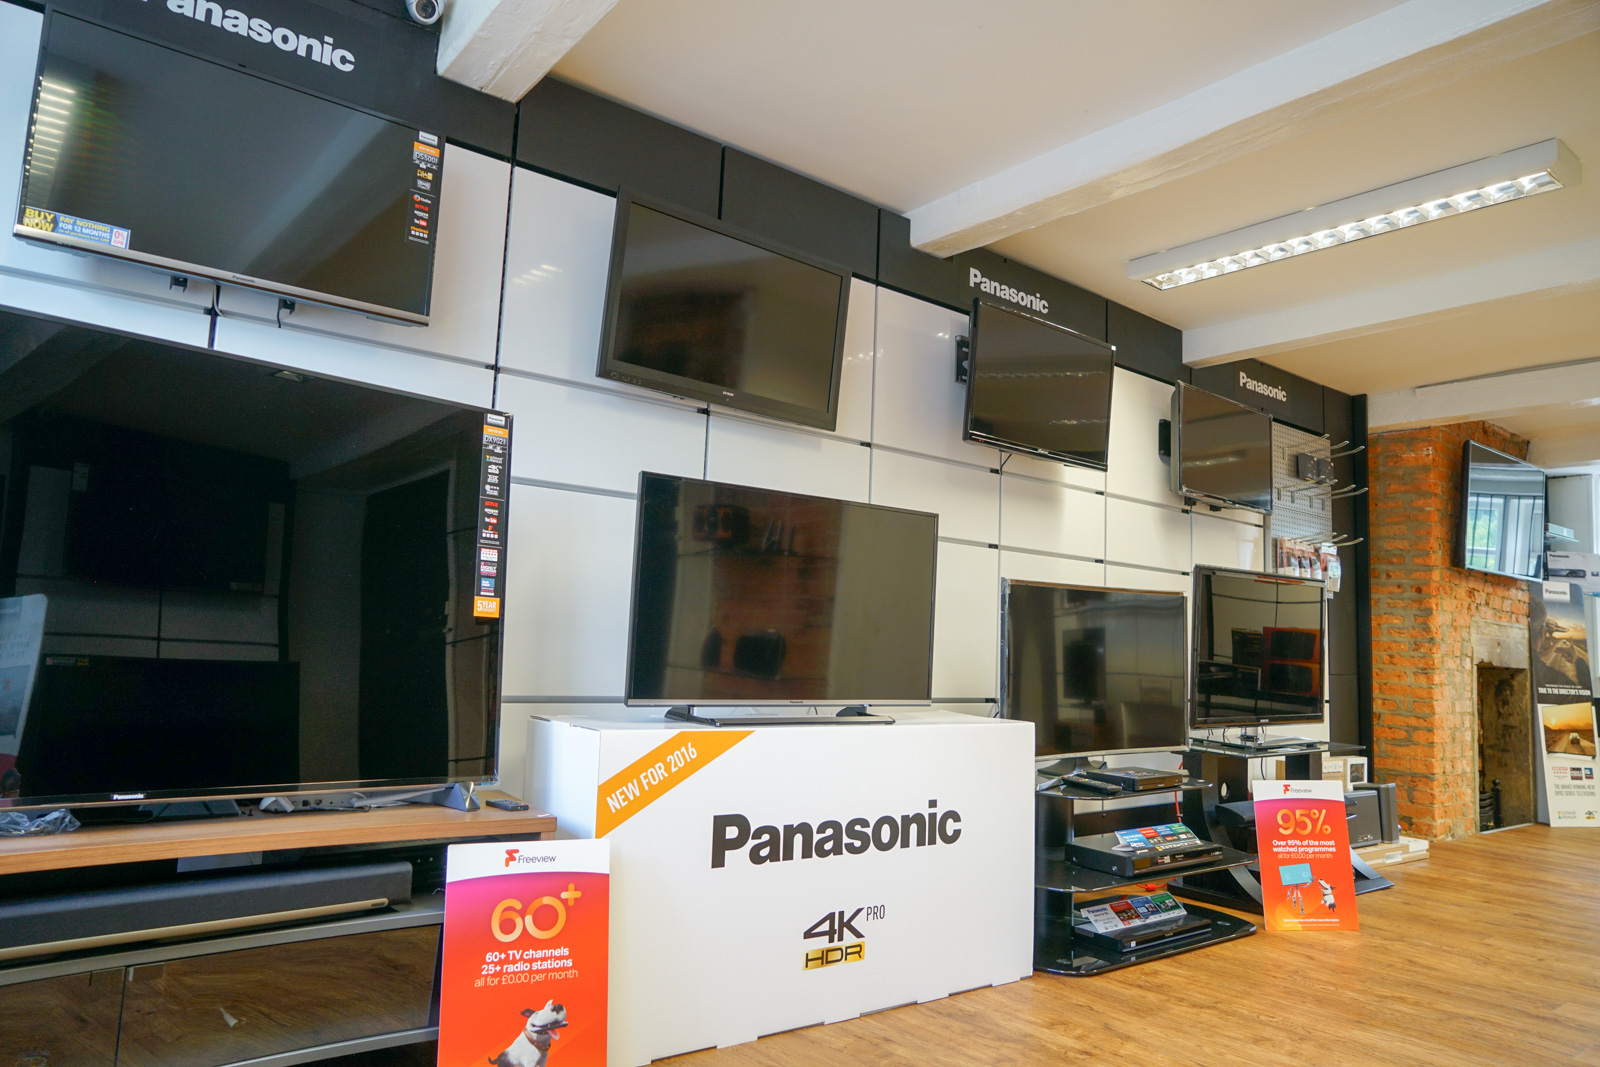 Panasonic Experts